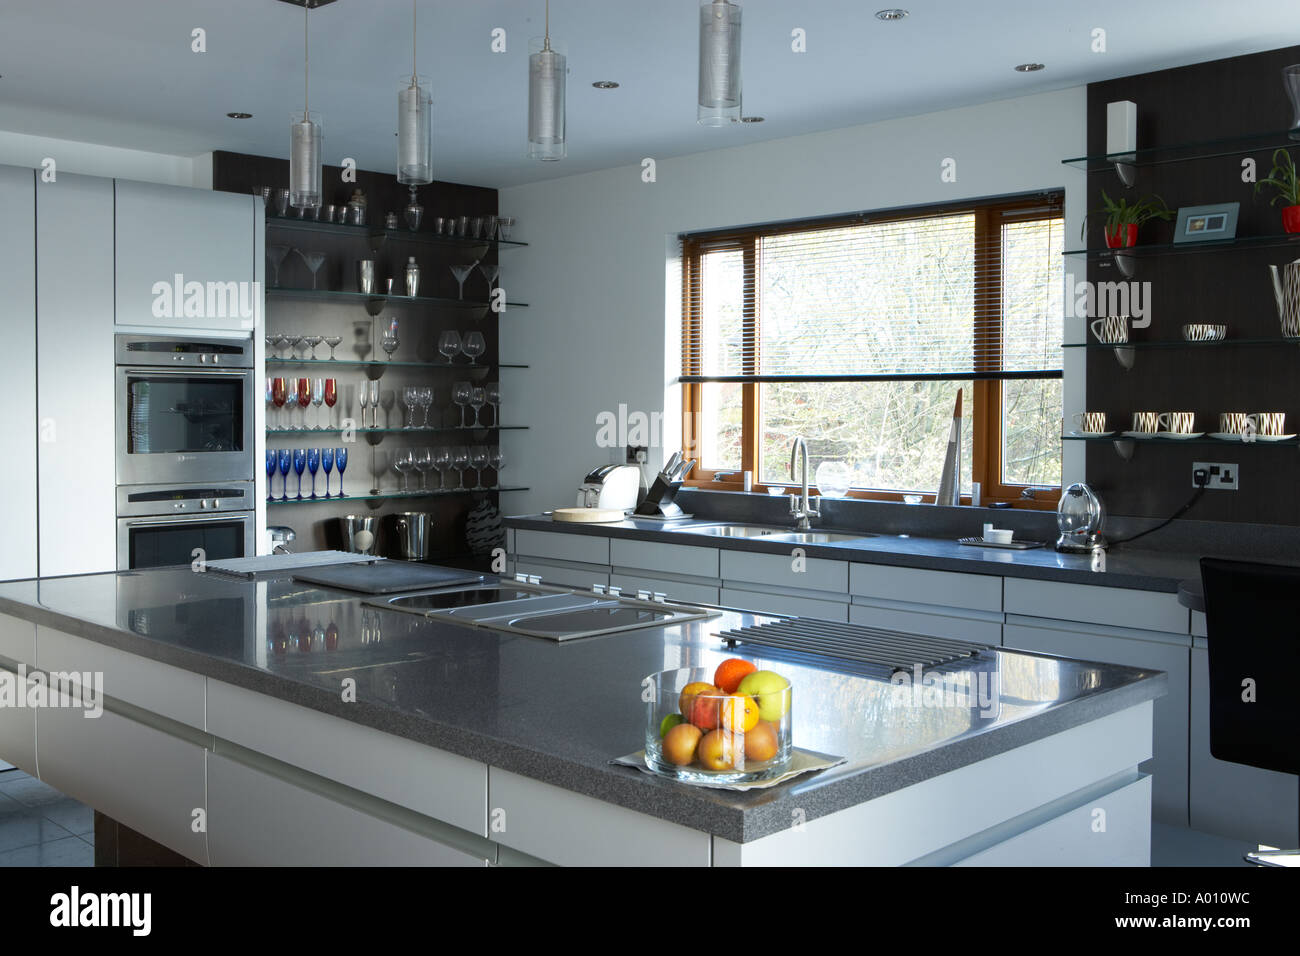 kitchen central food preparation area in modern house stock stock photo kitchen central food preparation area in modern house